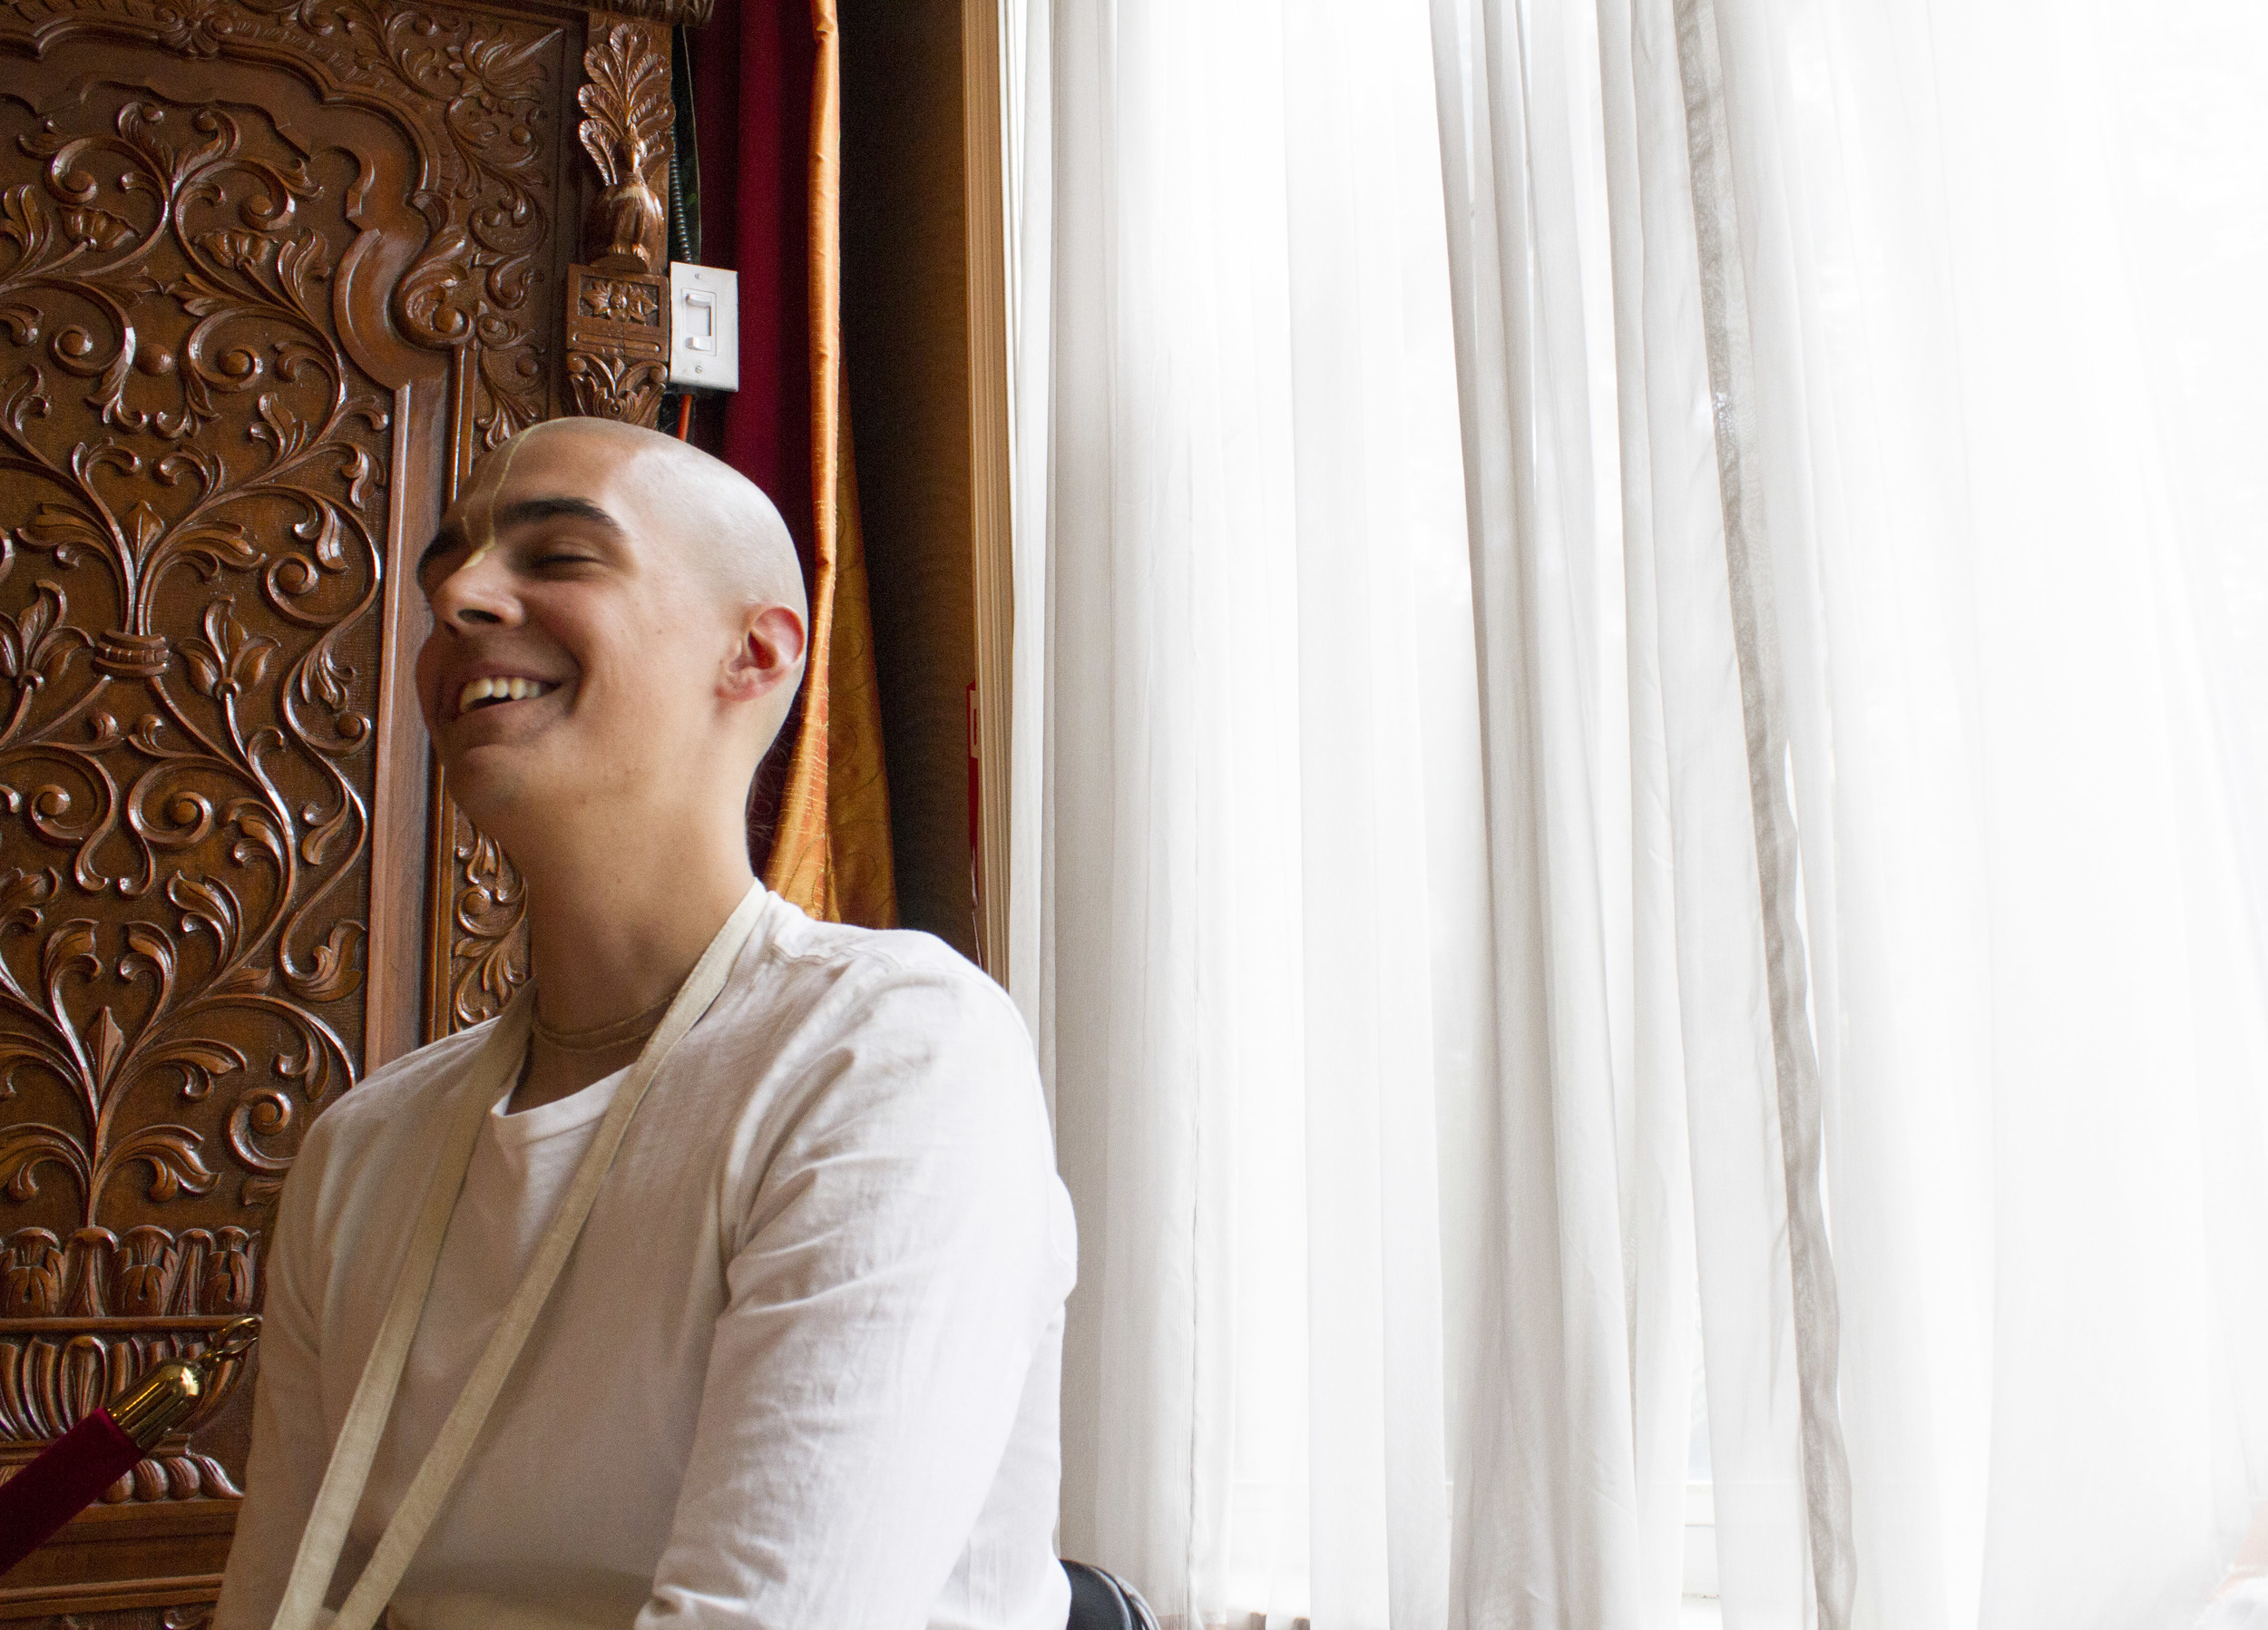 Hare Krishna monk Alex Seibel, 19, in the East Village ashram he lives in with other monks.